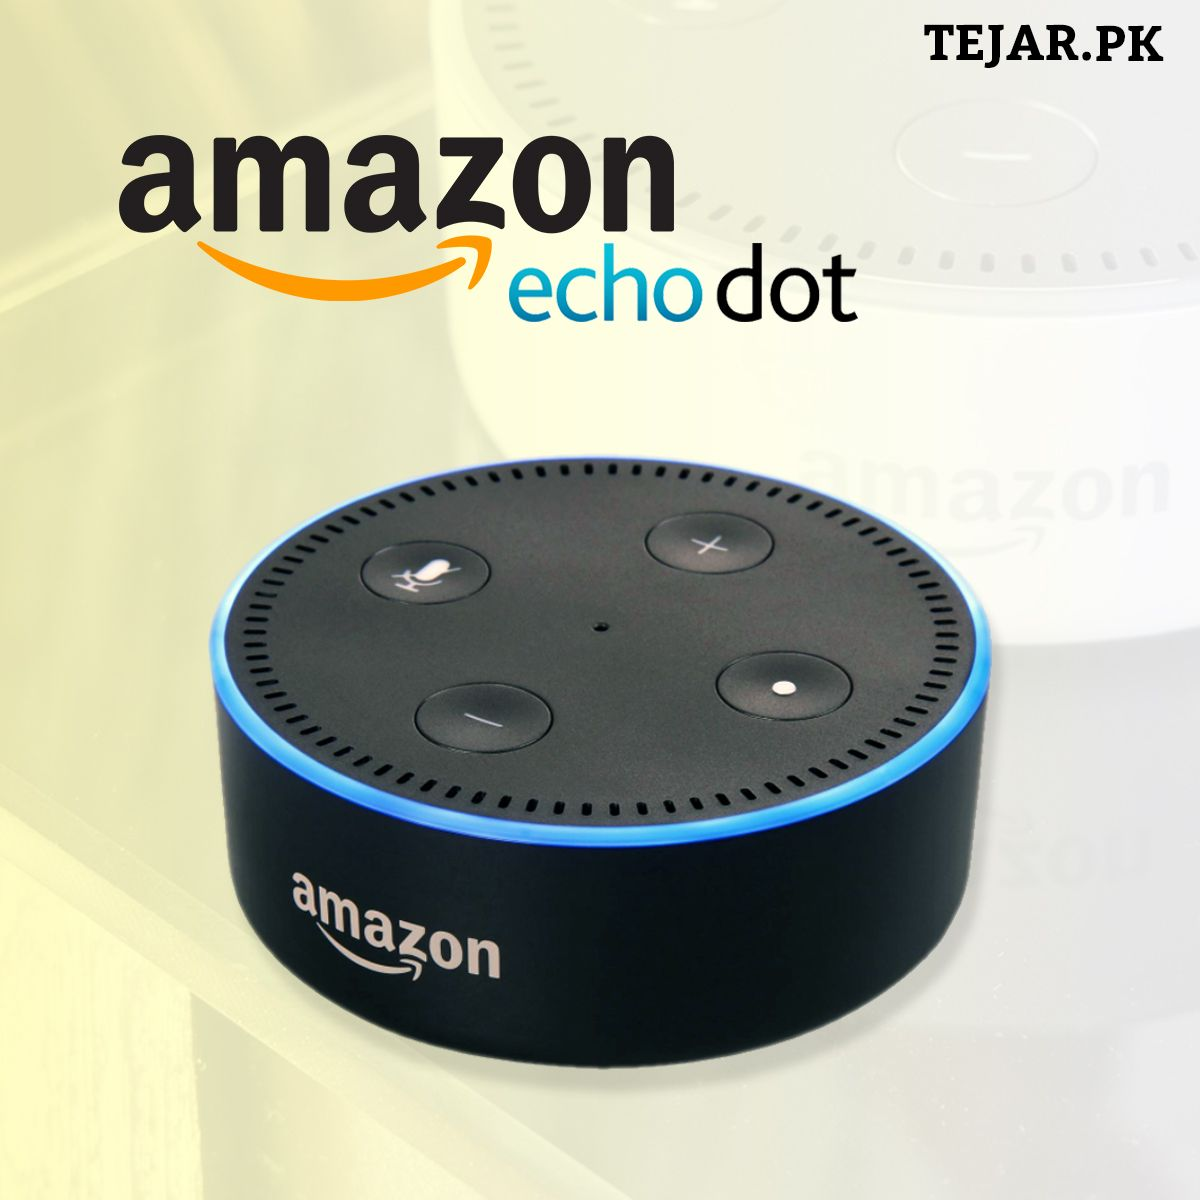 Amazon Echo Dot 2nd Generation Amazon Alexa App Amazon Echo